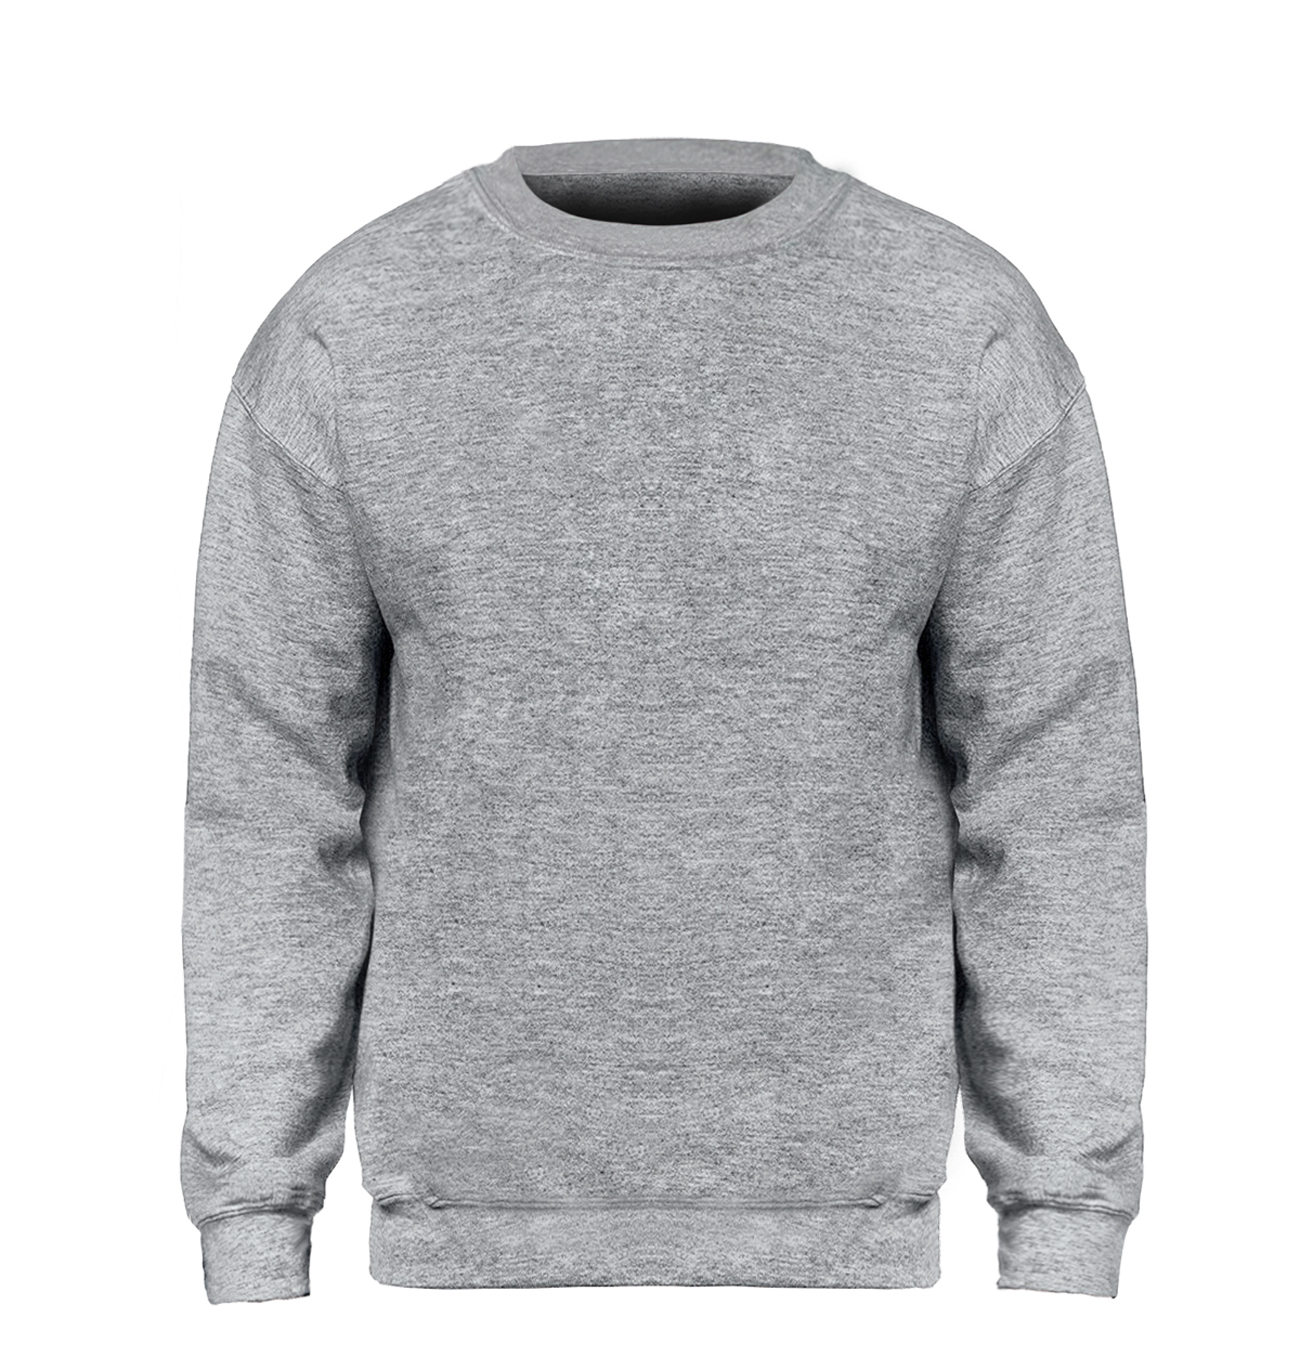 Solid color Sweatshirt Men Hoodie Crewneck Sweatshirts Winter Autumn Fleece Hoody Casual Gray Blue Red Black White Streetwear(China)